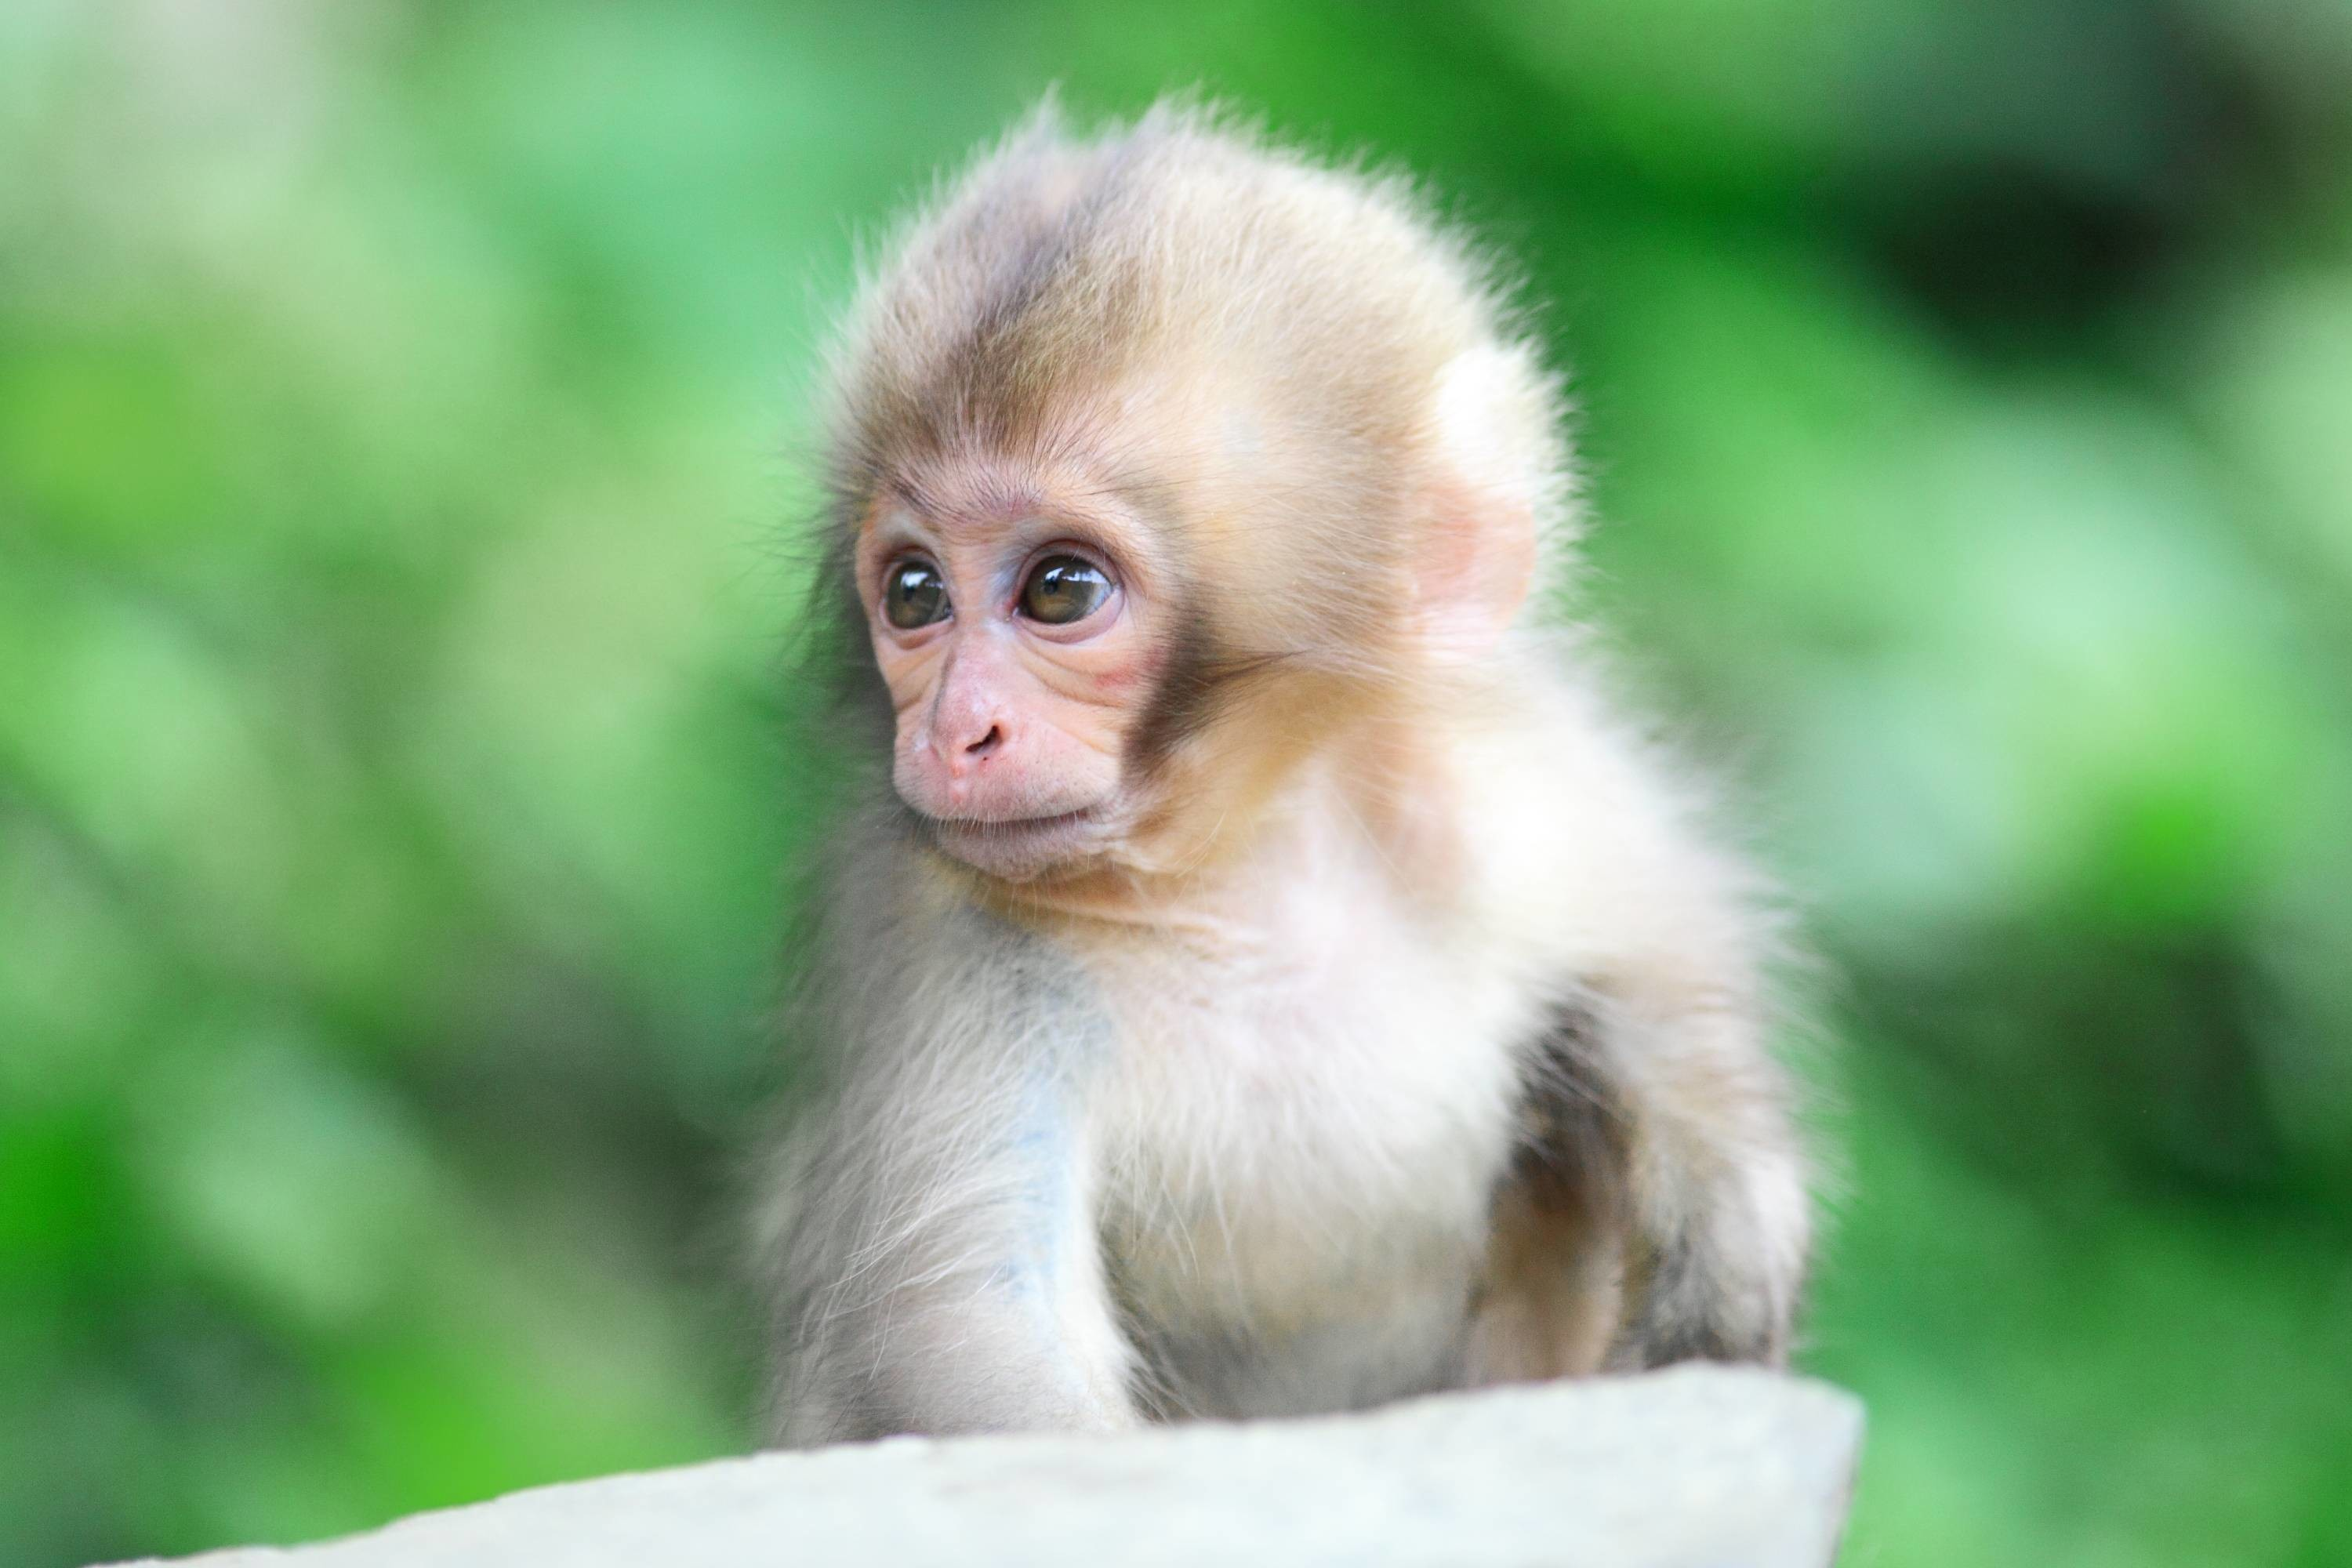 3000x2000 Wallpapers For > Cute Monkey Wallpapers